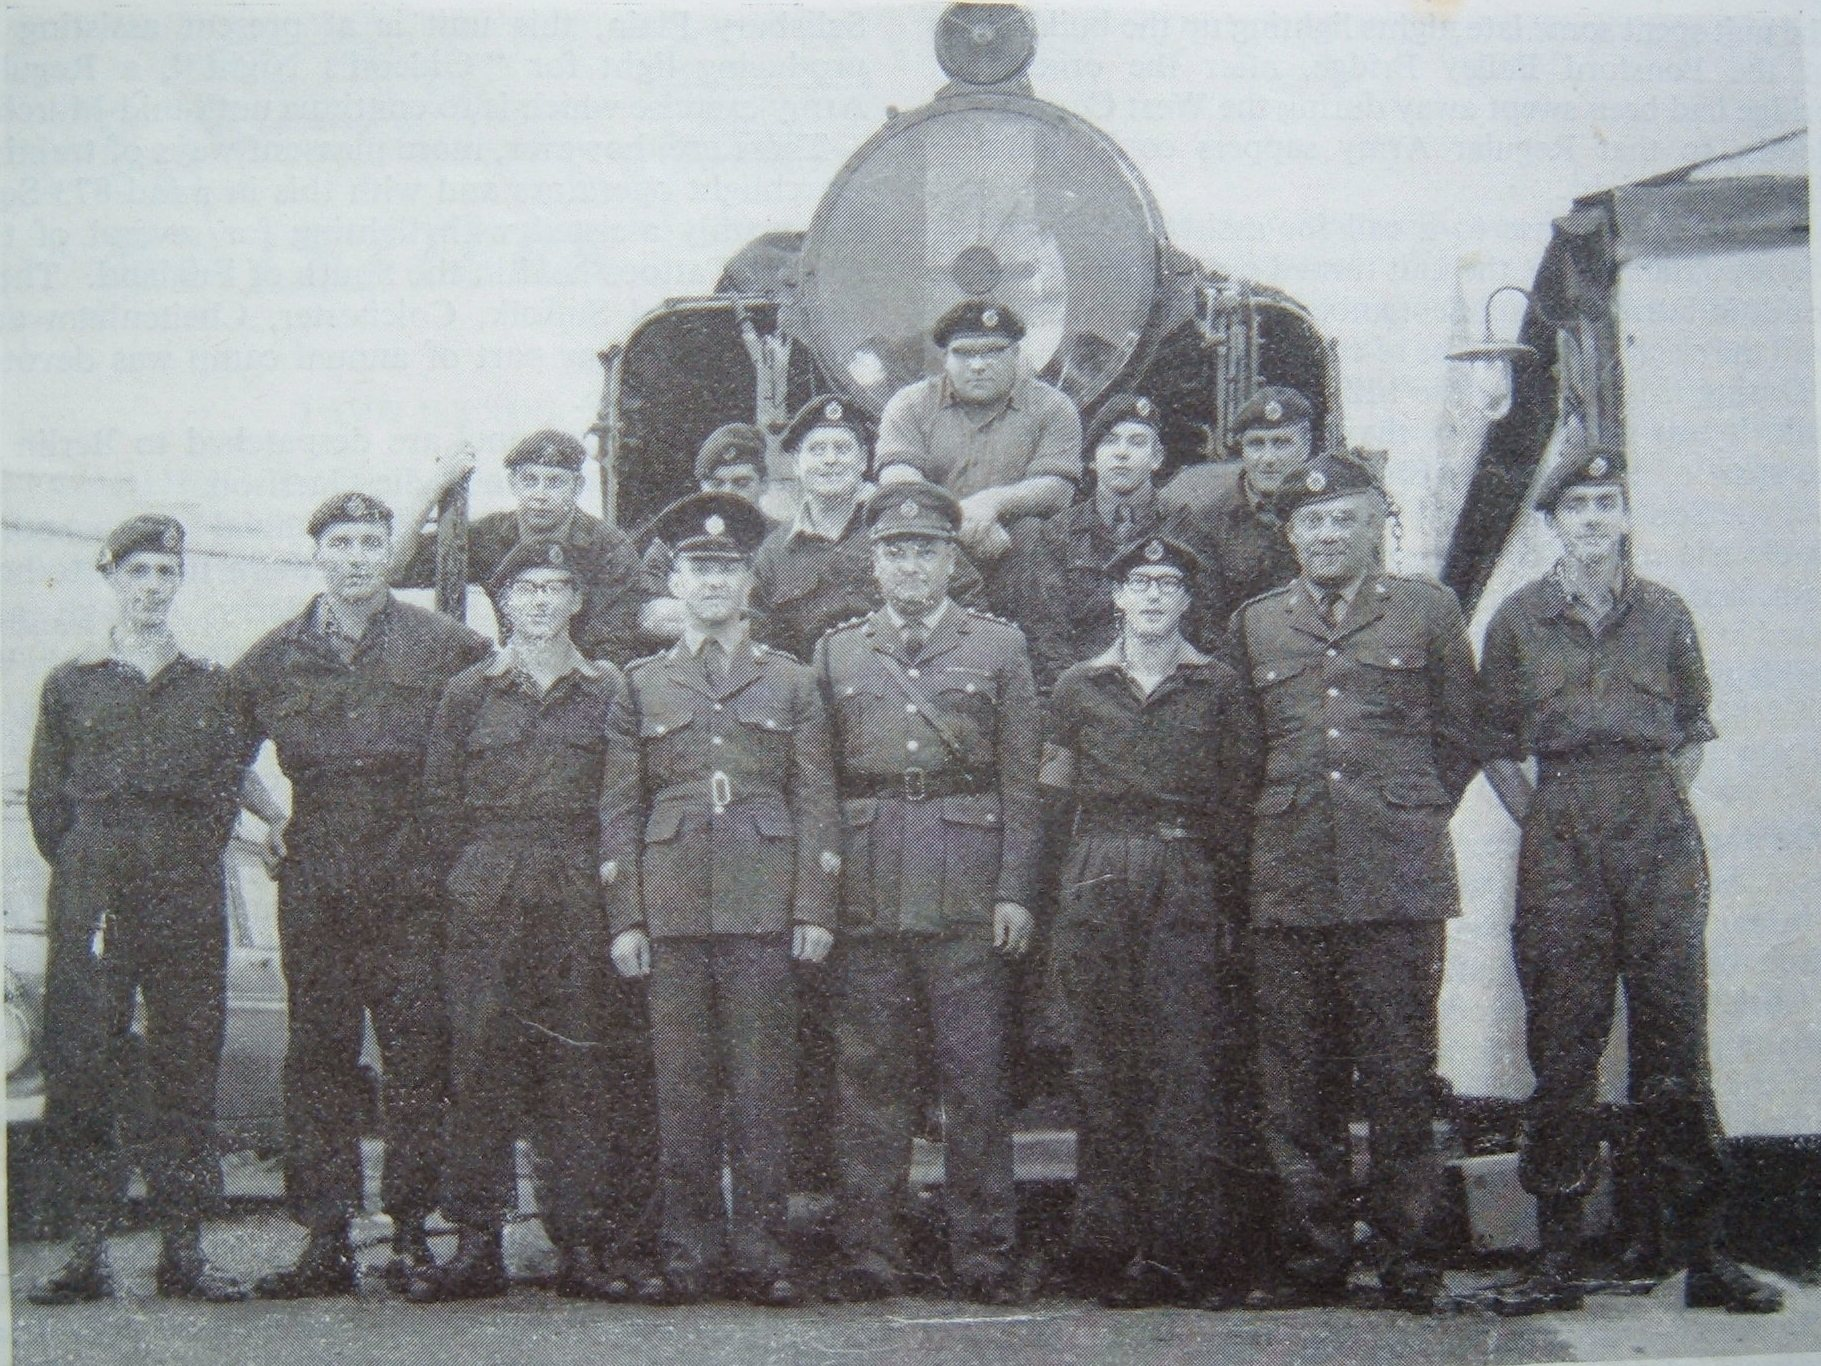 873's team at the Ulster Tattoo, 1968